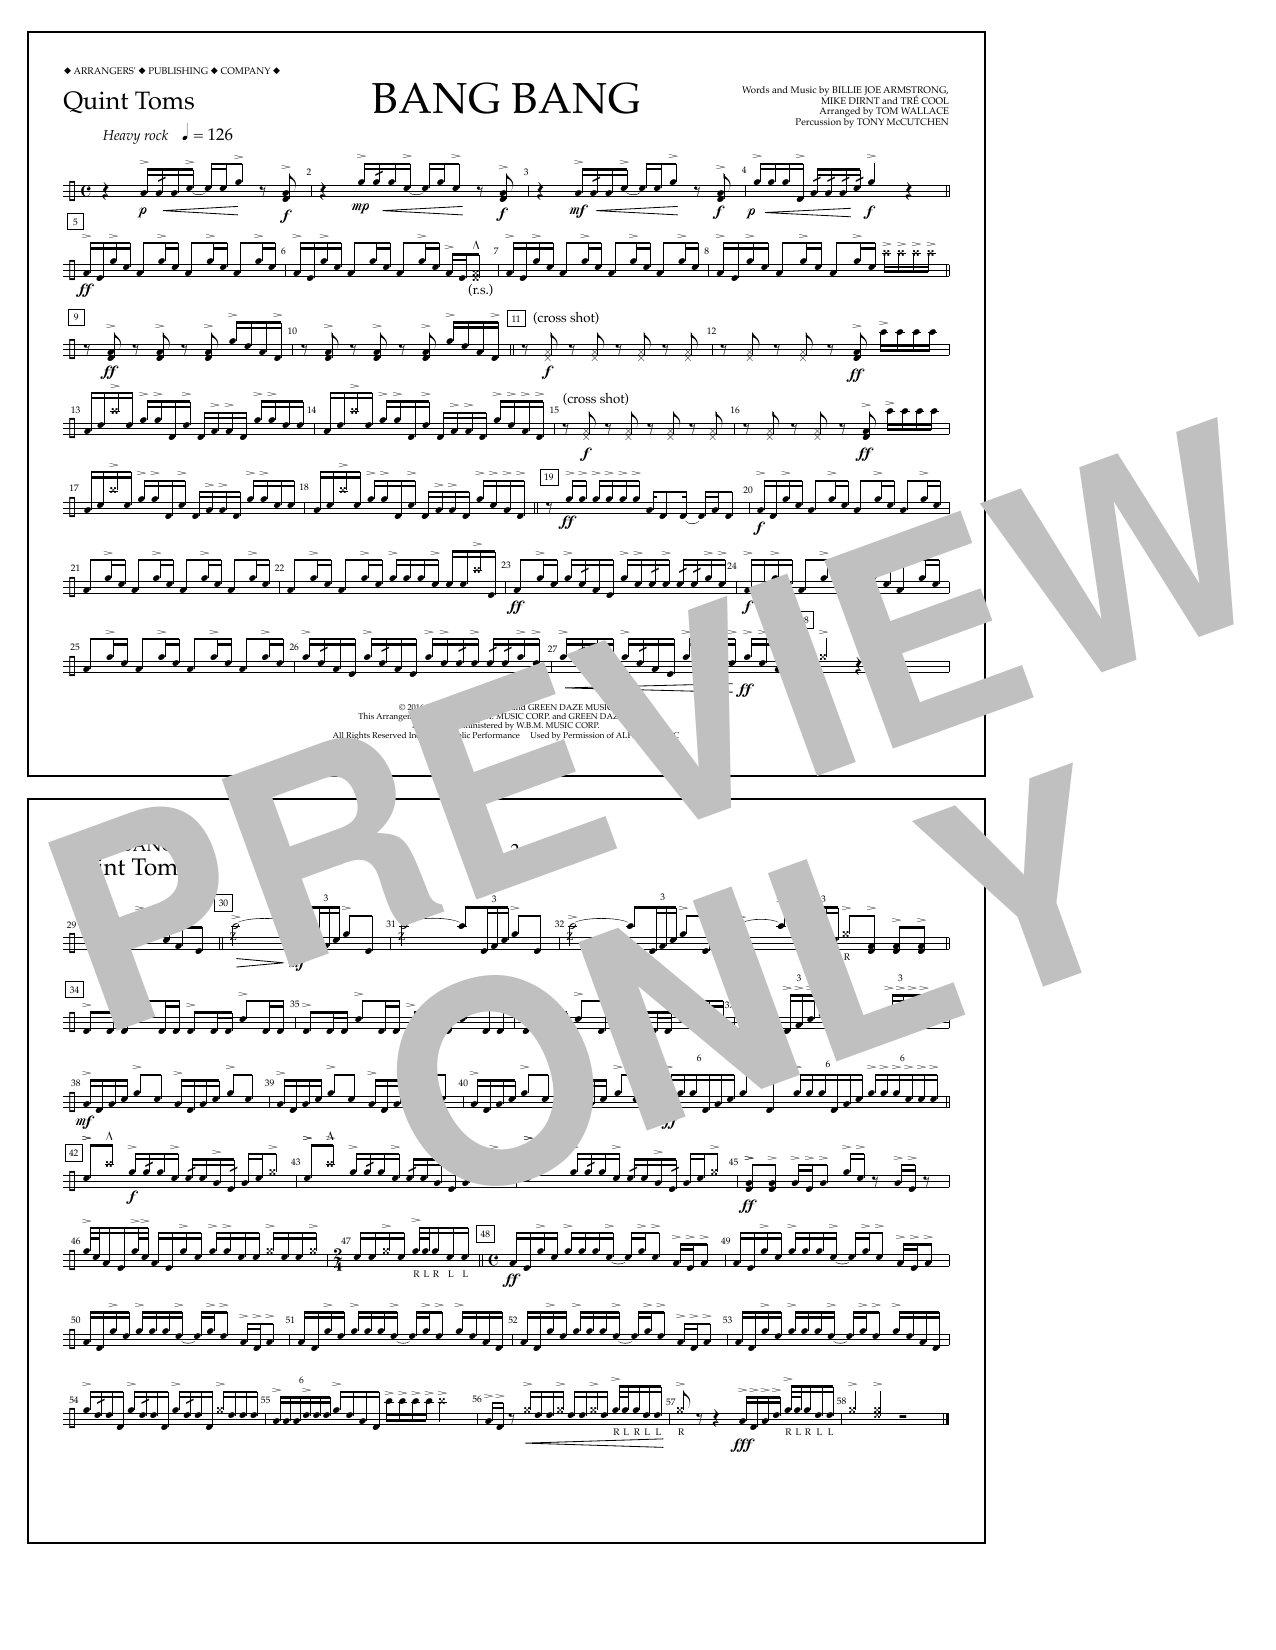 Bang Bang - Quint-Toms Sheet Music